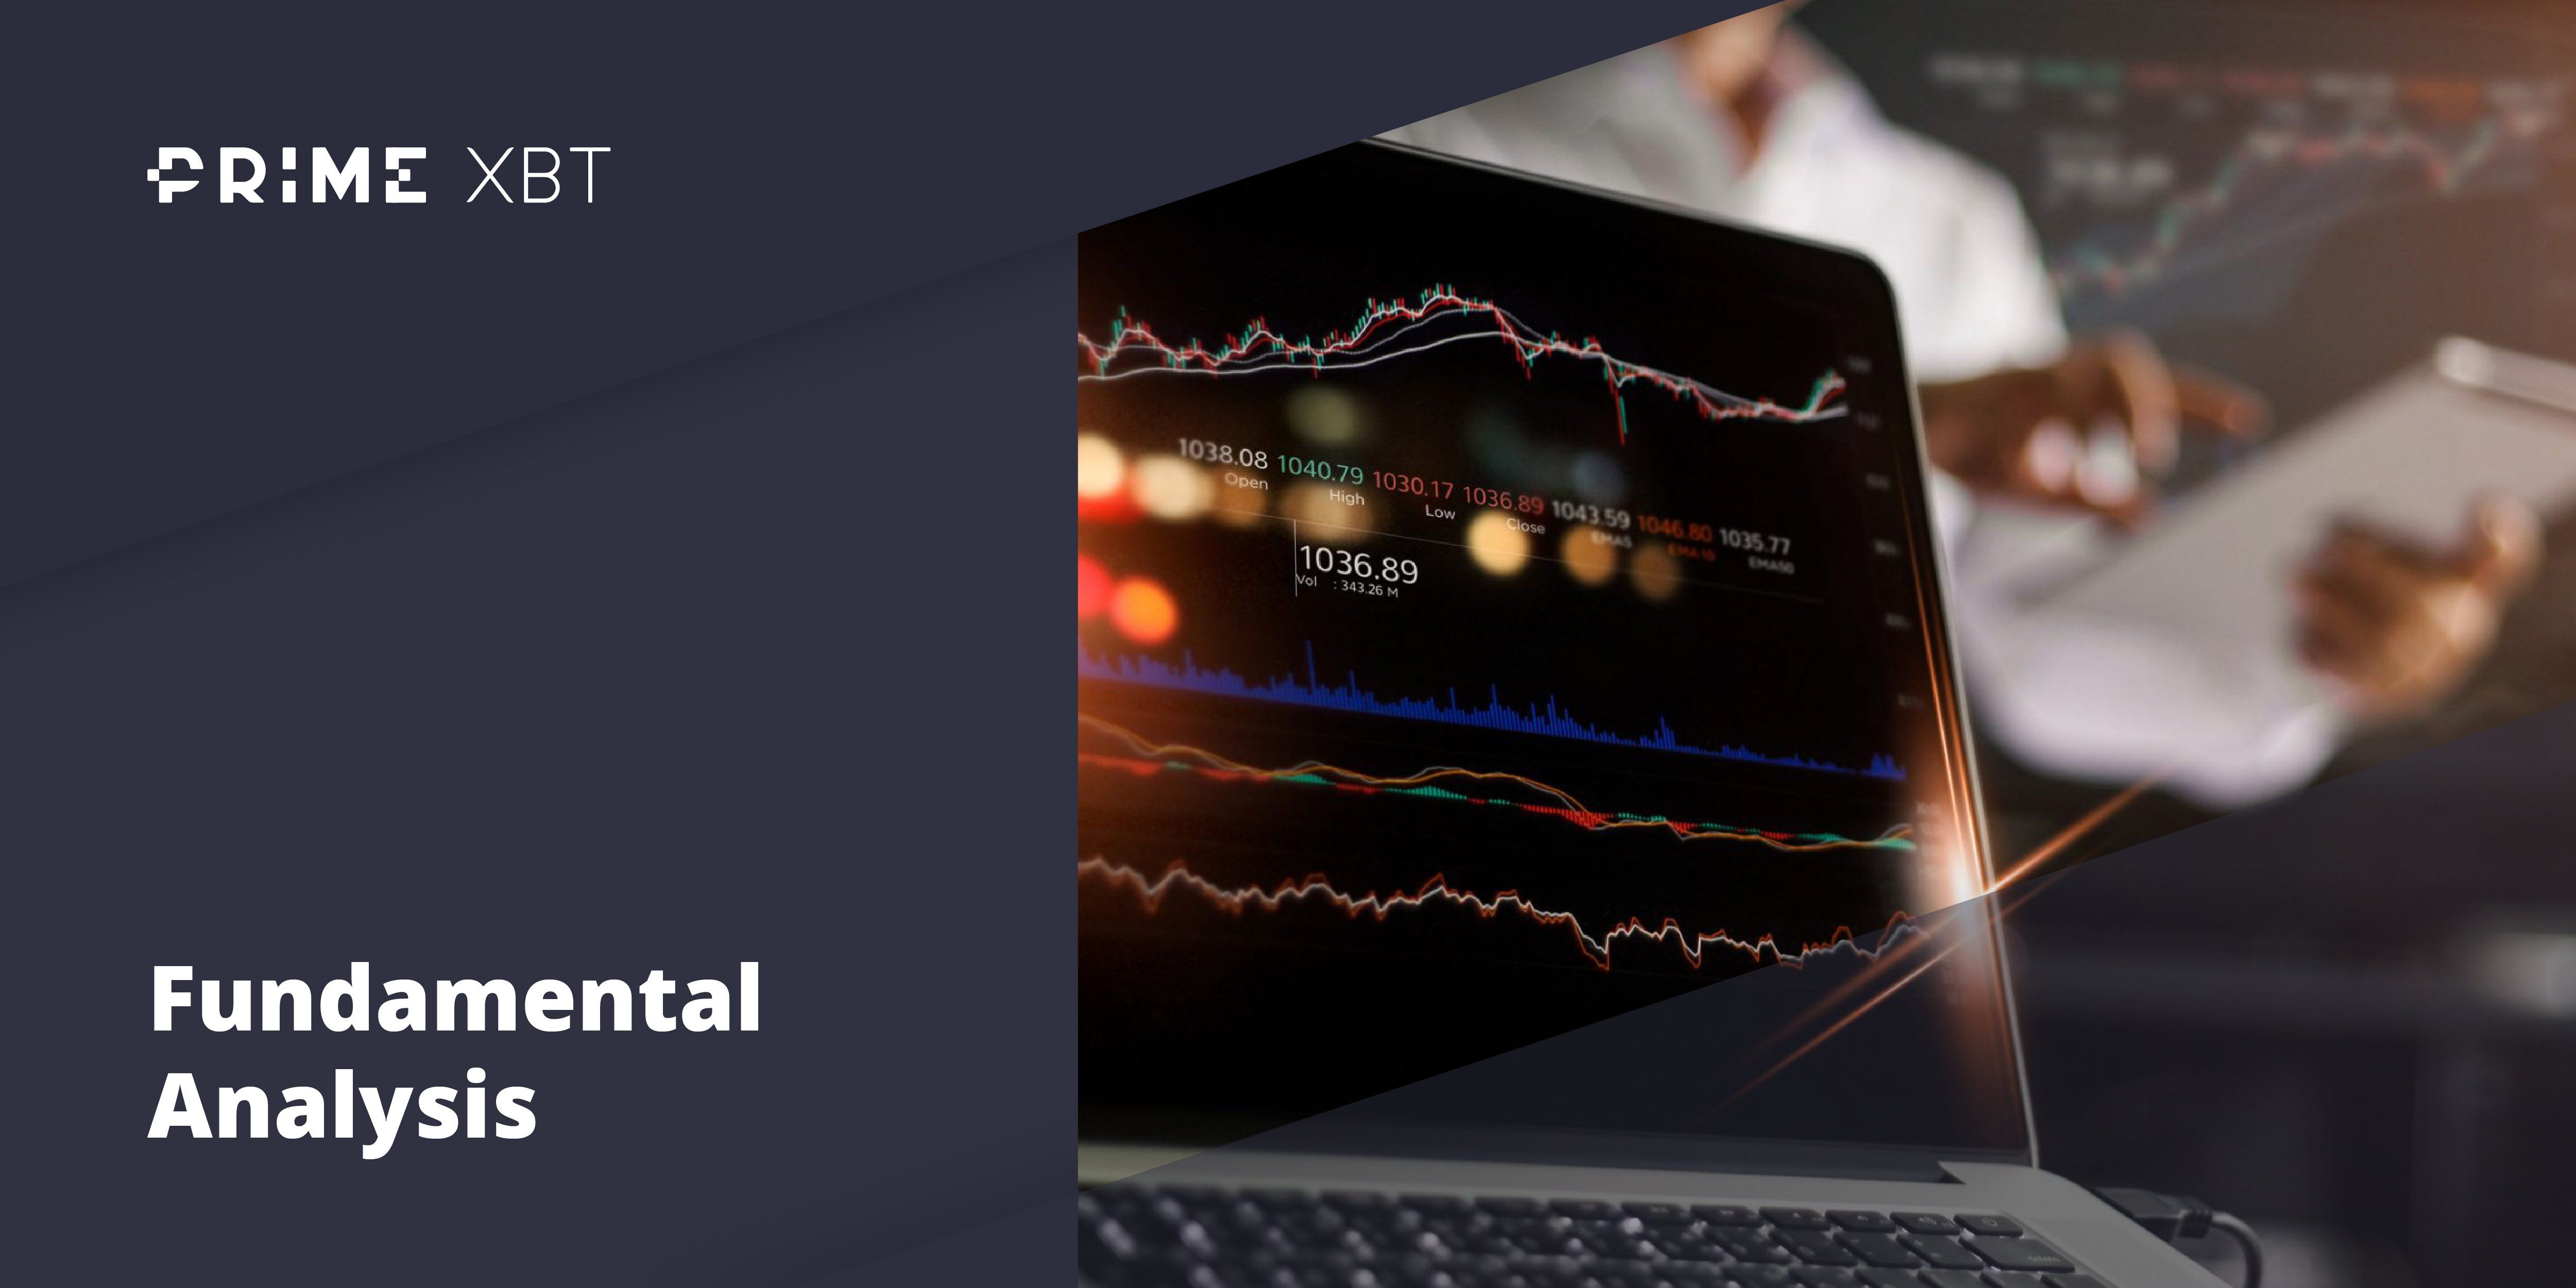 Fundamental Analysis Explained: A Trader's Tools For Profitability - analysis